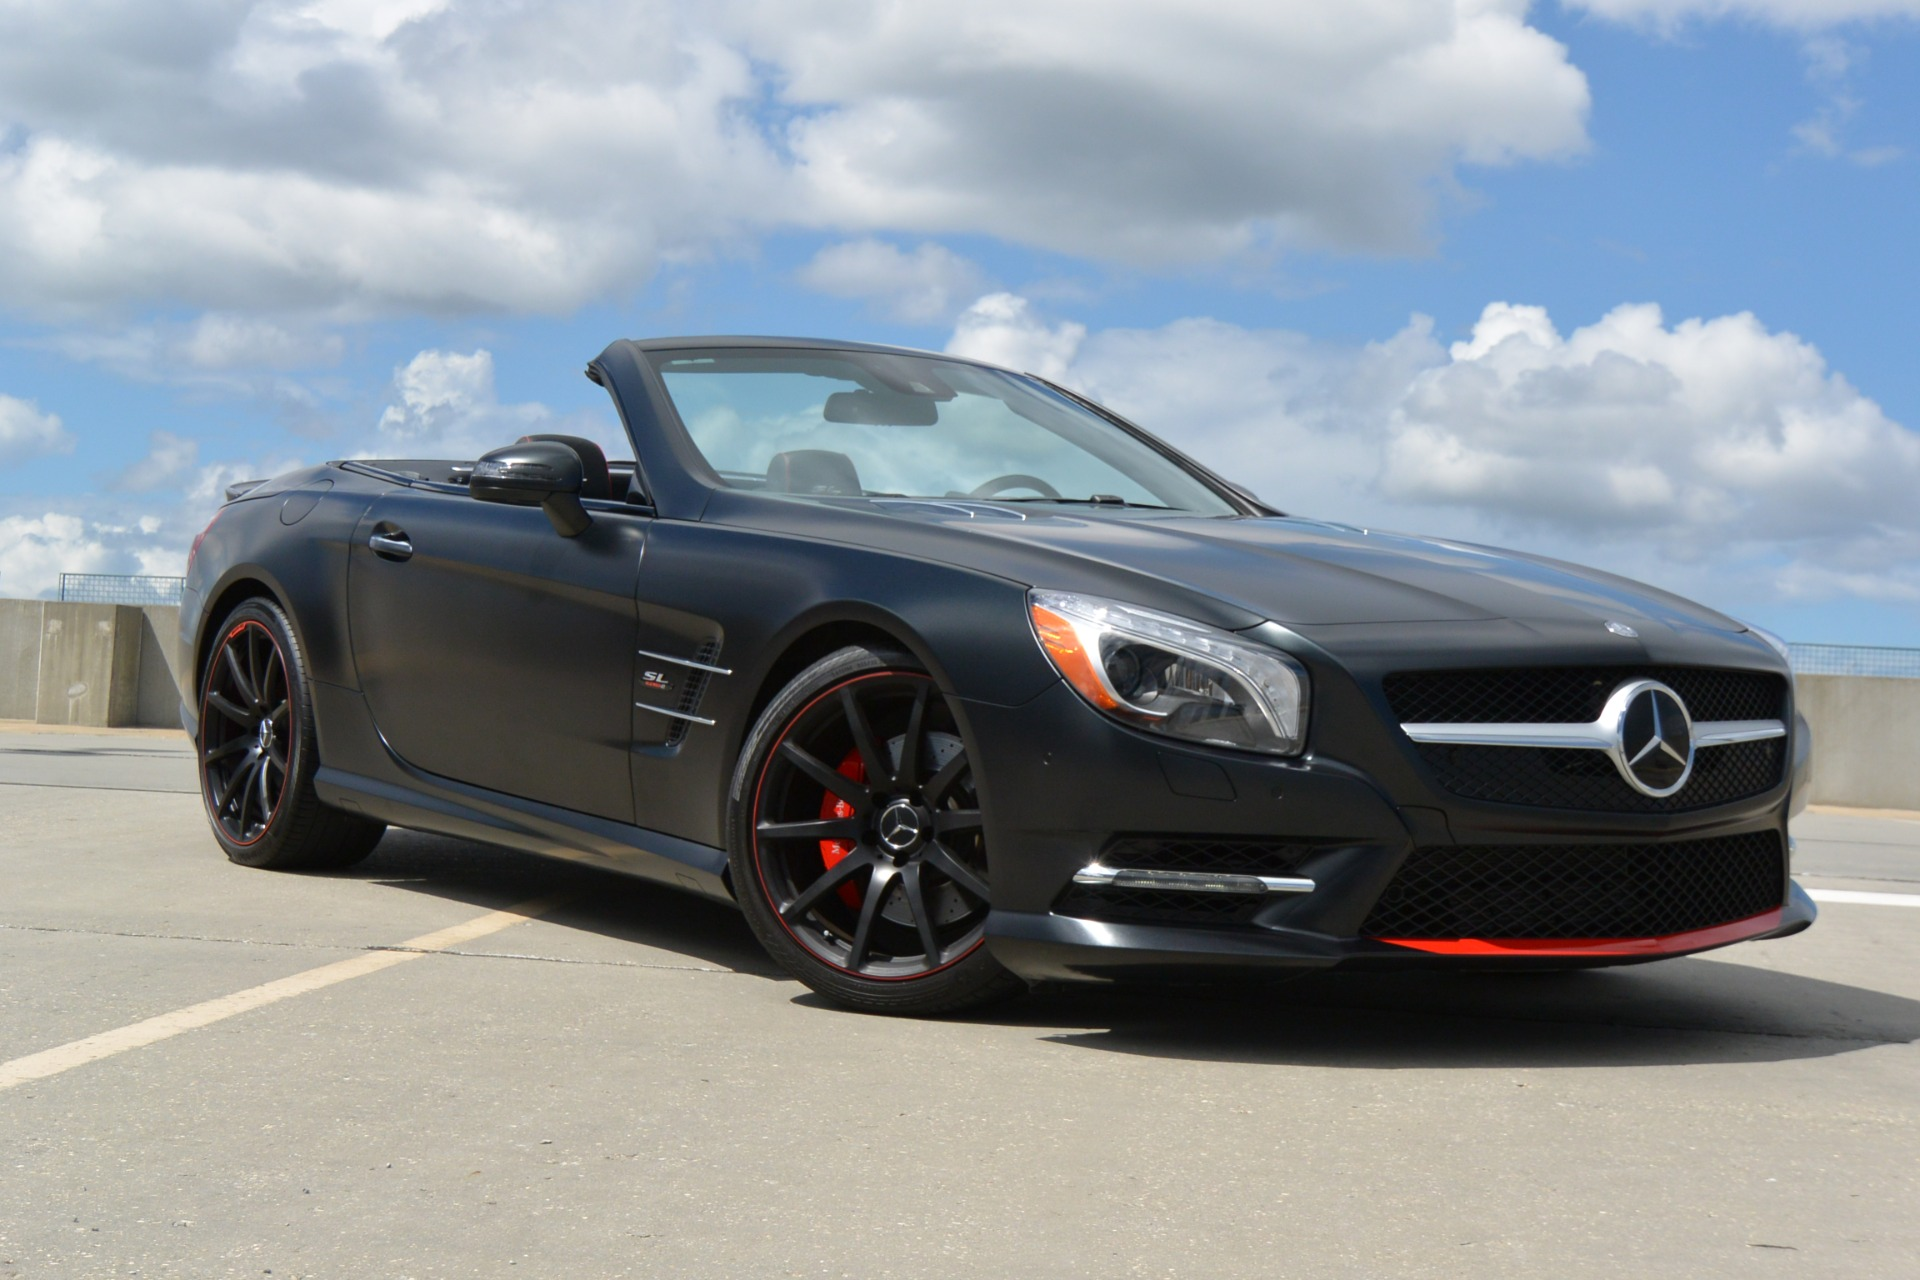 2016 mercedes benz sl sl 550 mille miglia stock f039463 for Used mercedes benz jackson ms